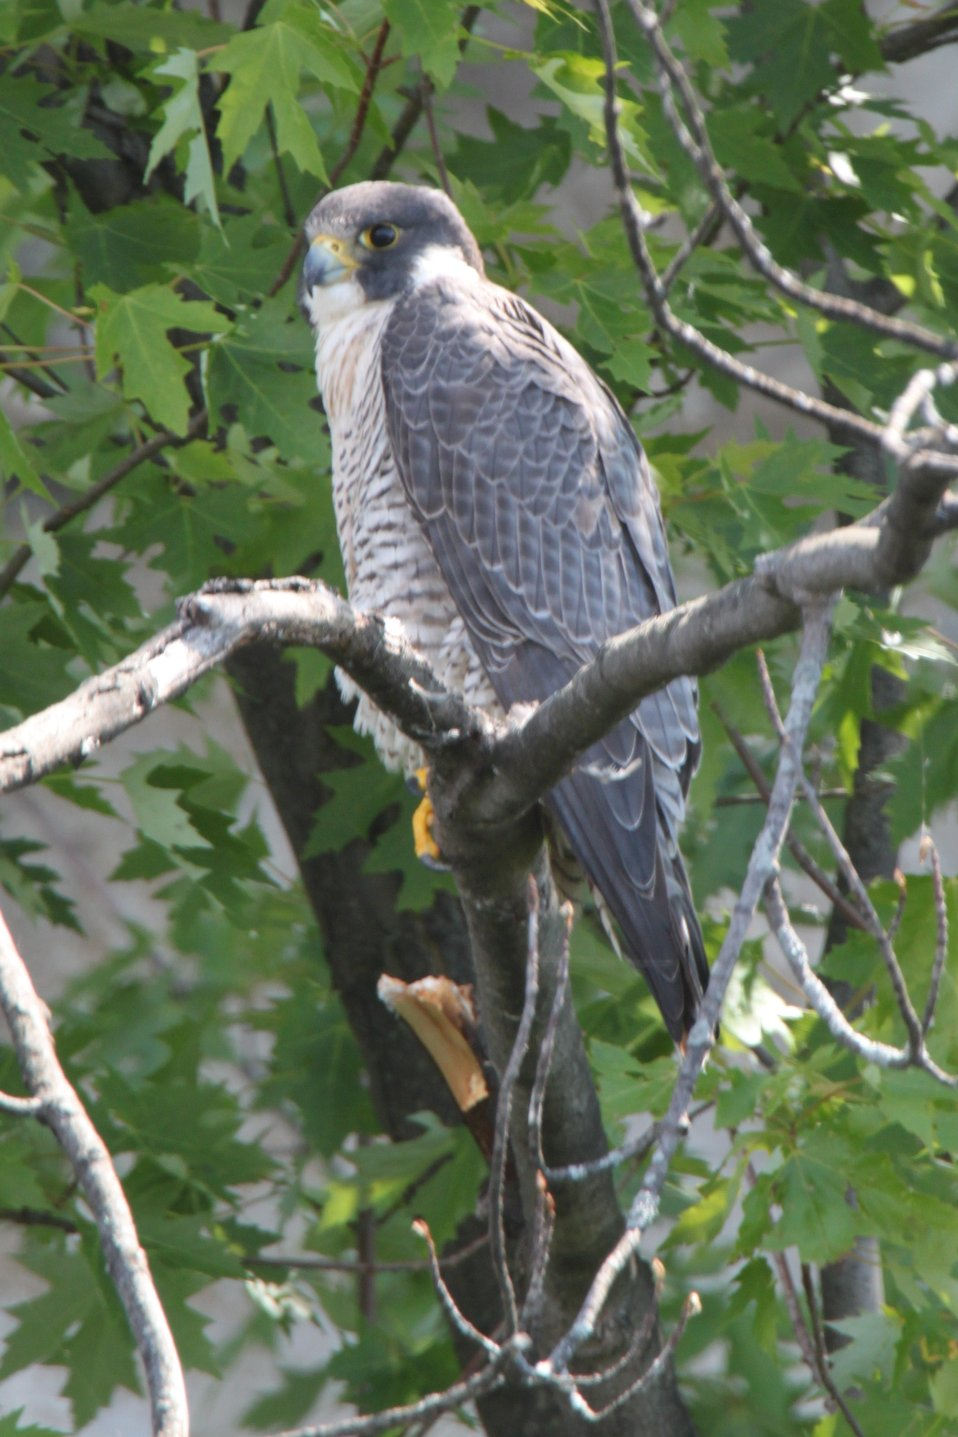 Female Peregrine Falcon